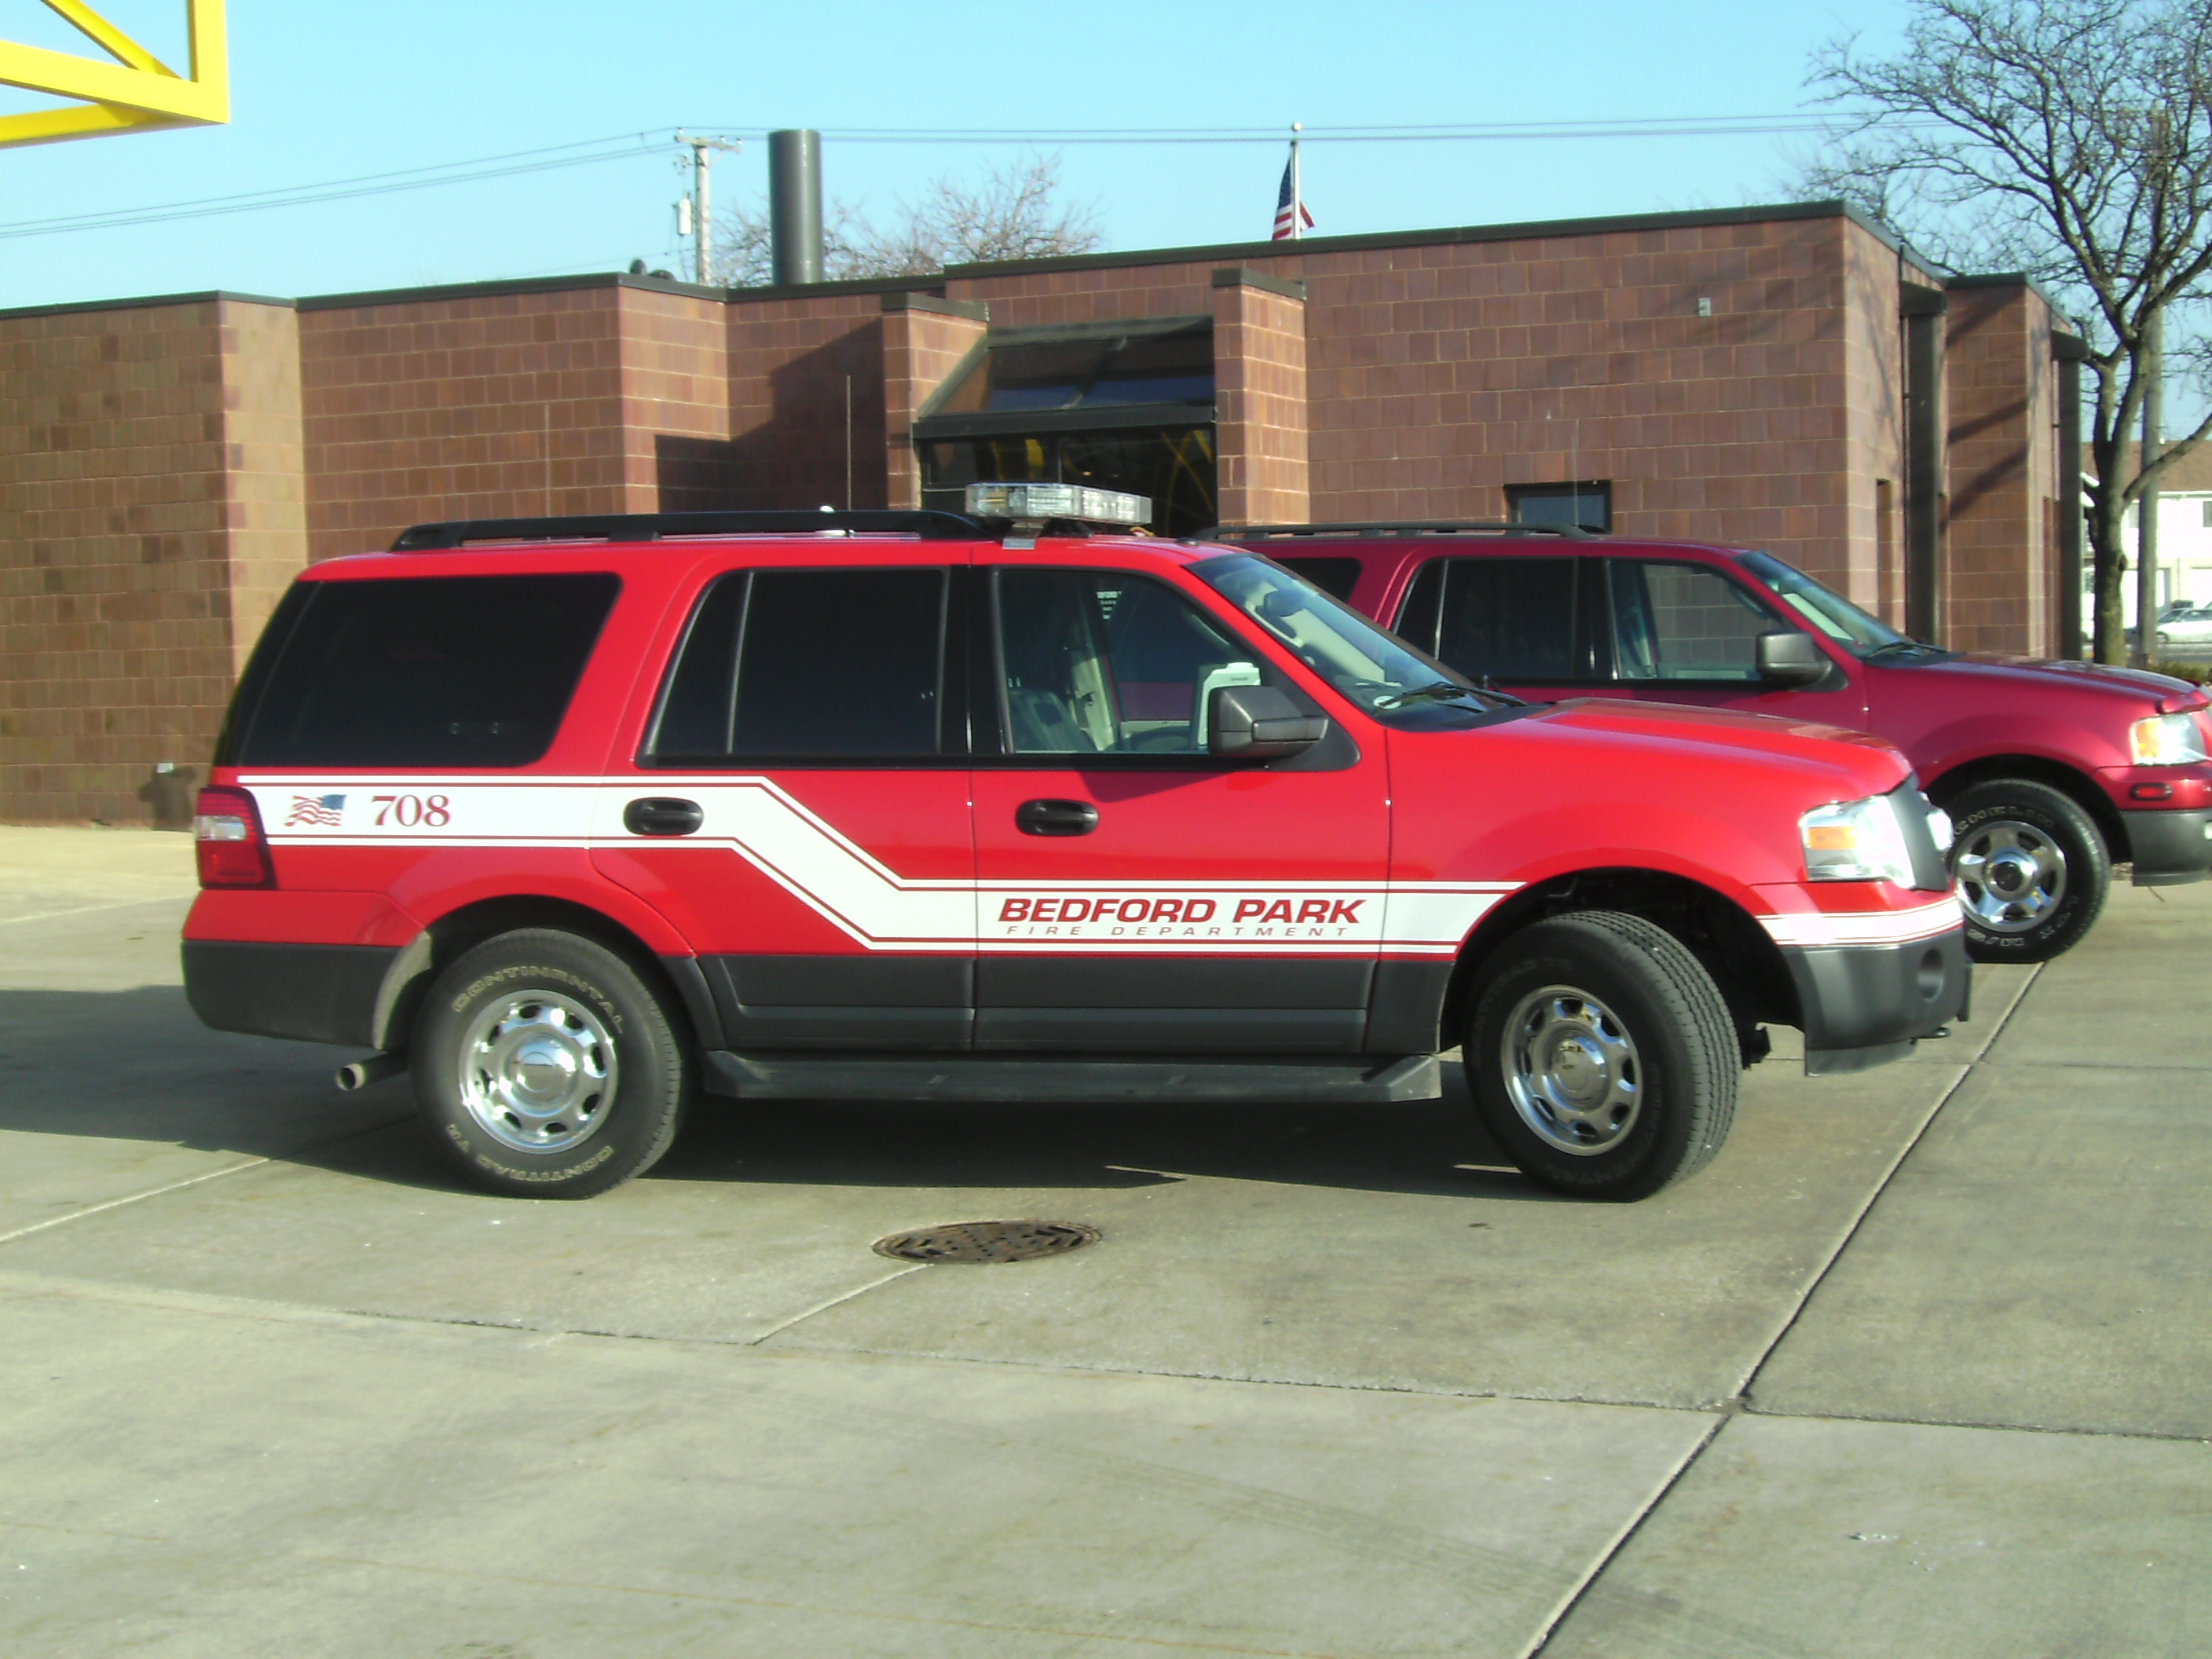 Battalion Chief for Bedford Park